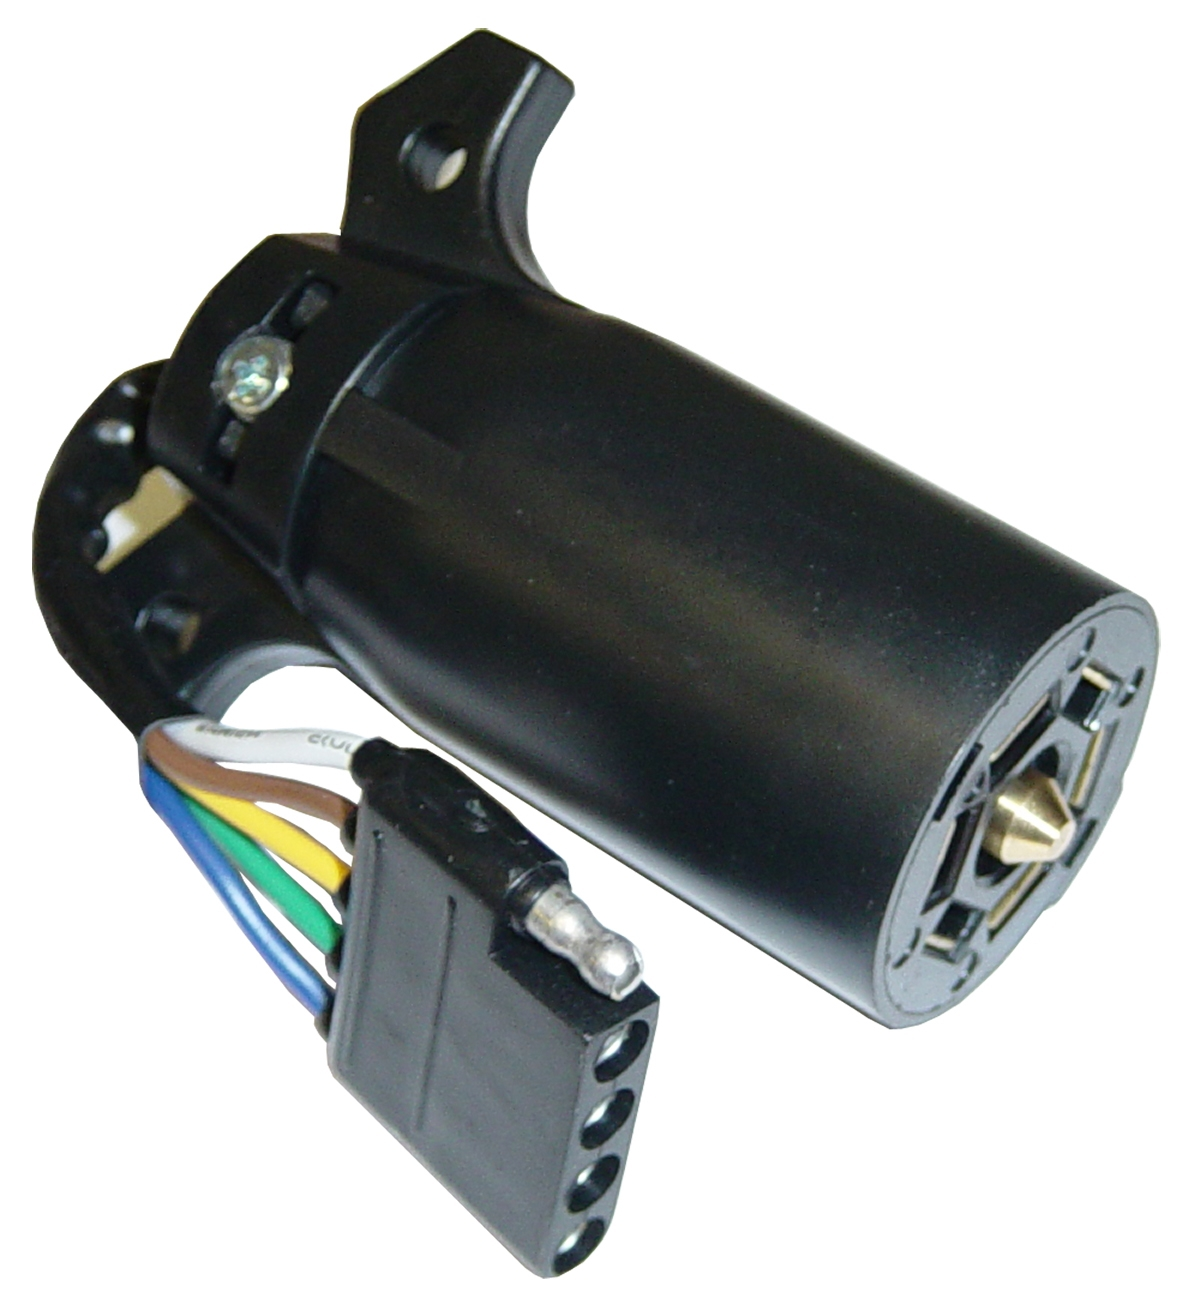 medium resolution of kimpex trailer wire adapter with lead